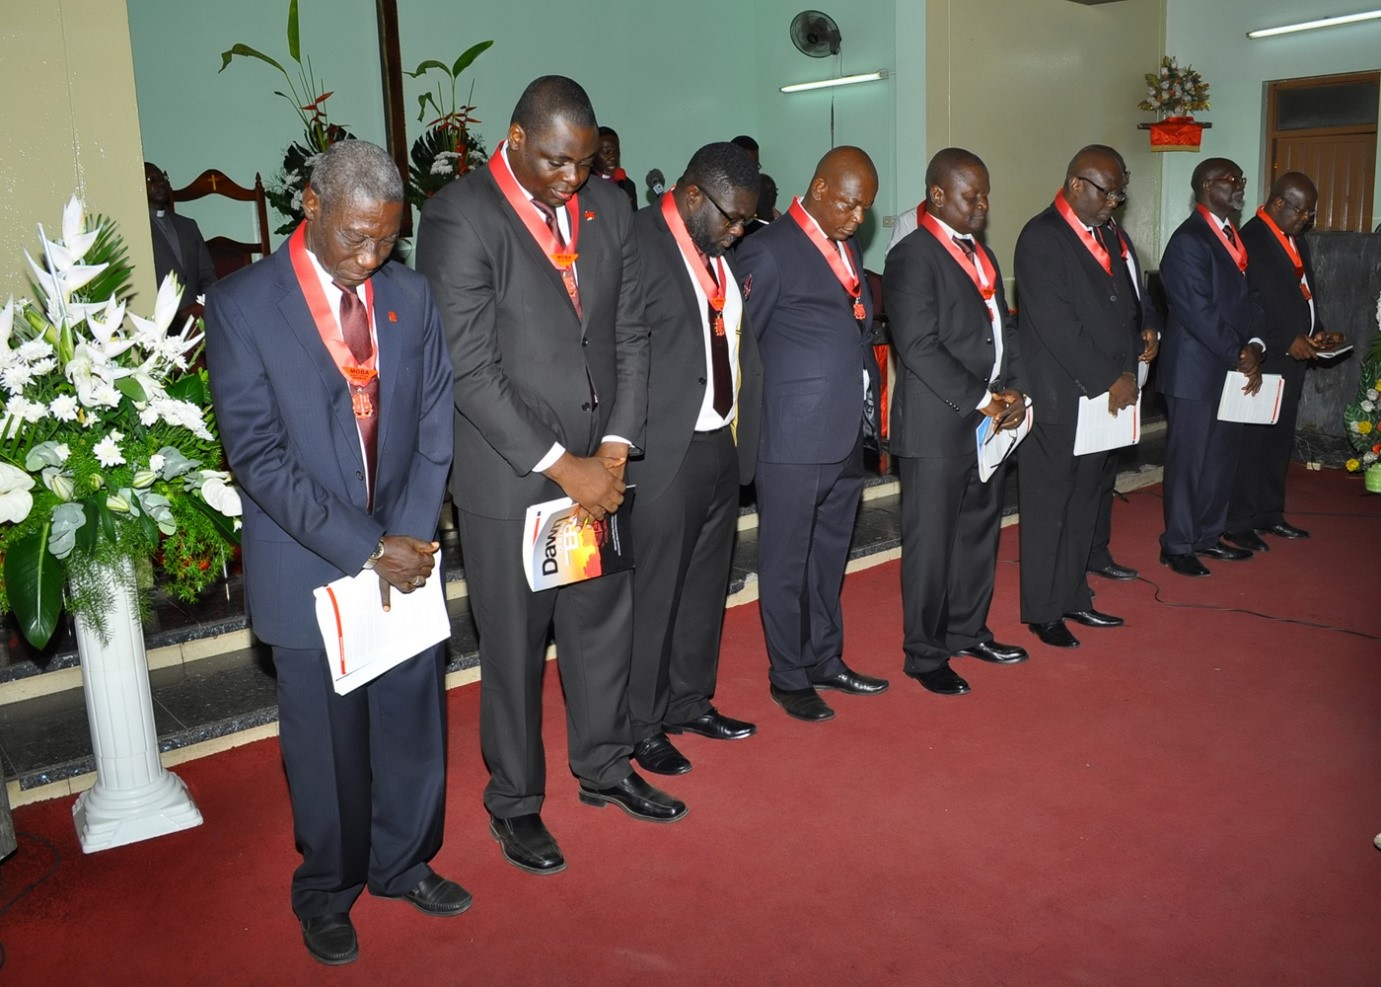 Induction of MOBA National Executive Members